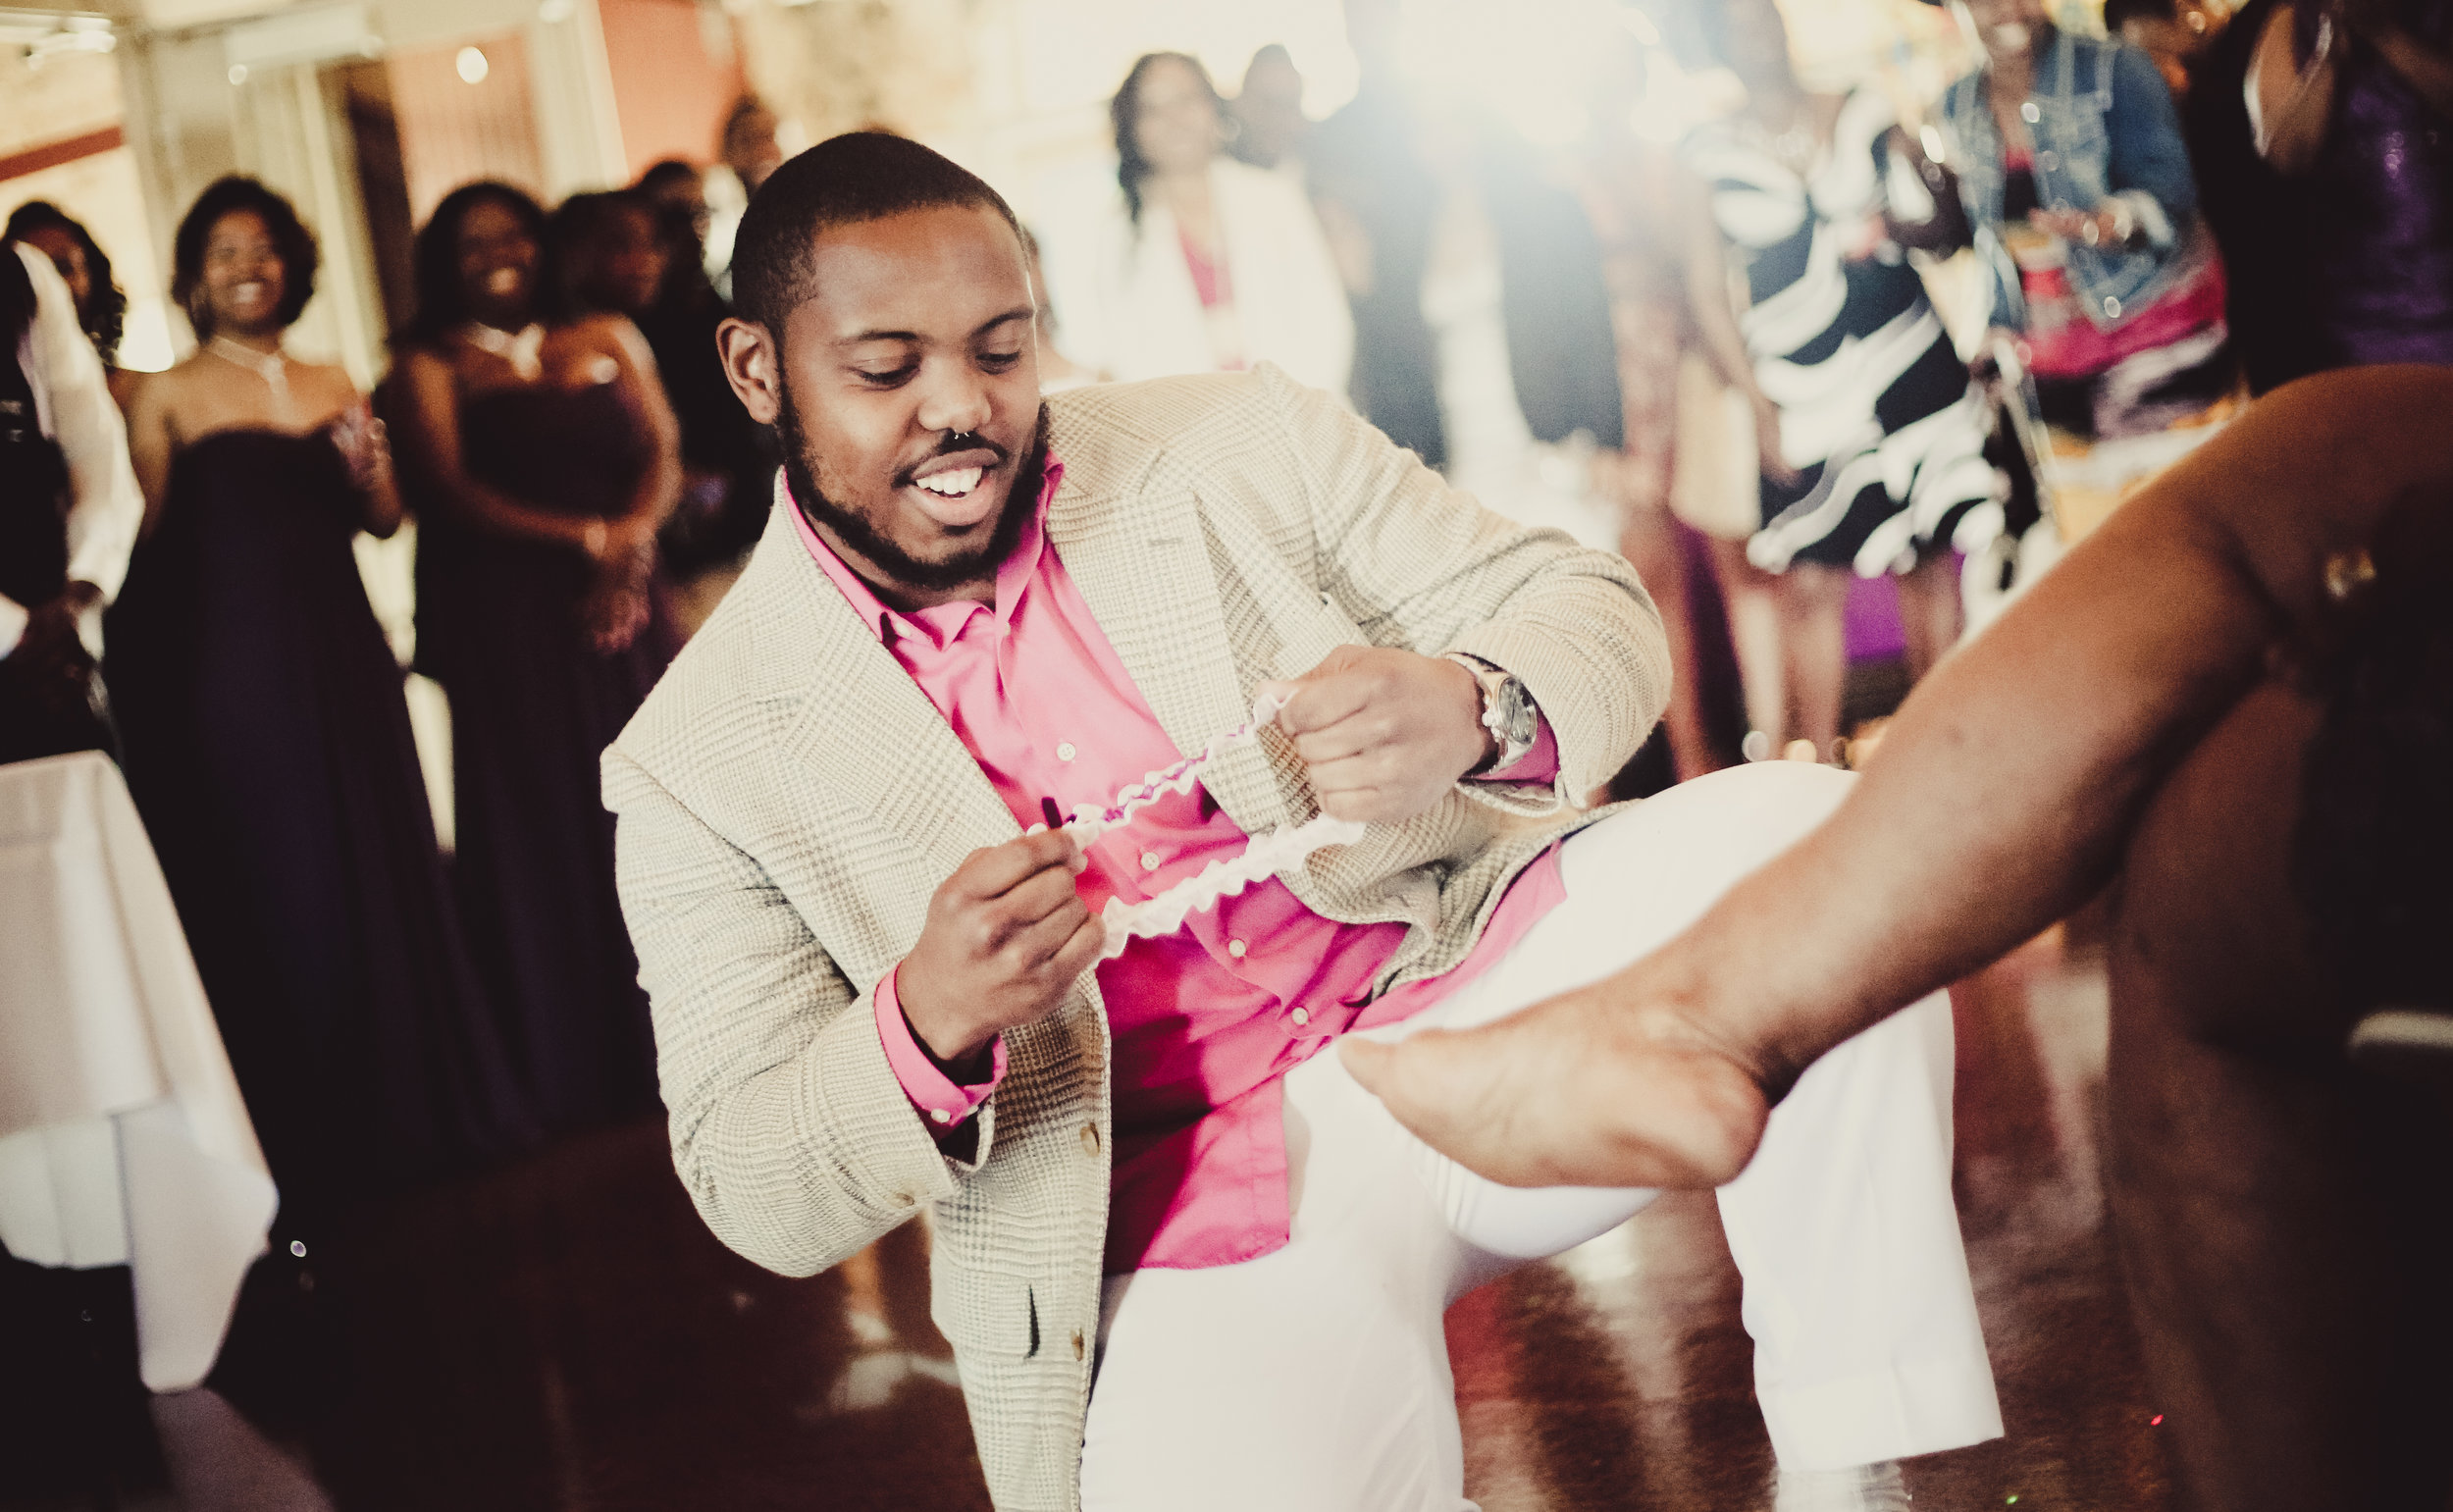 5-24-14_Errol Ebanks_The Finney Wedding_1101.jpg